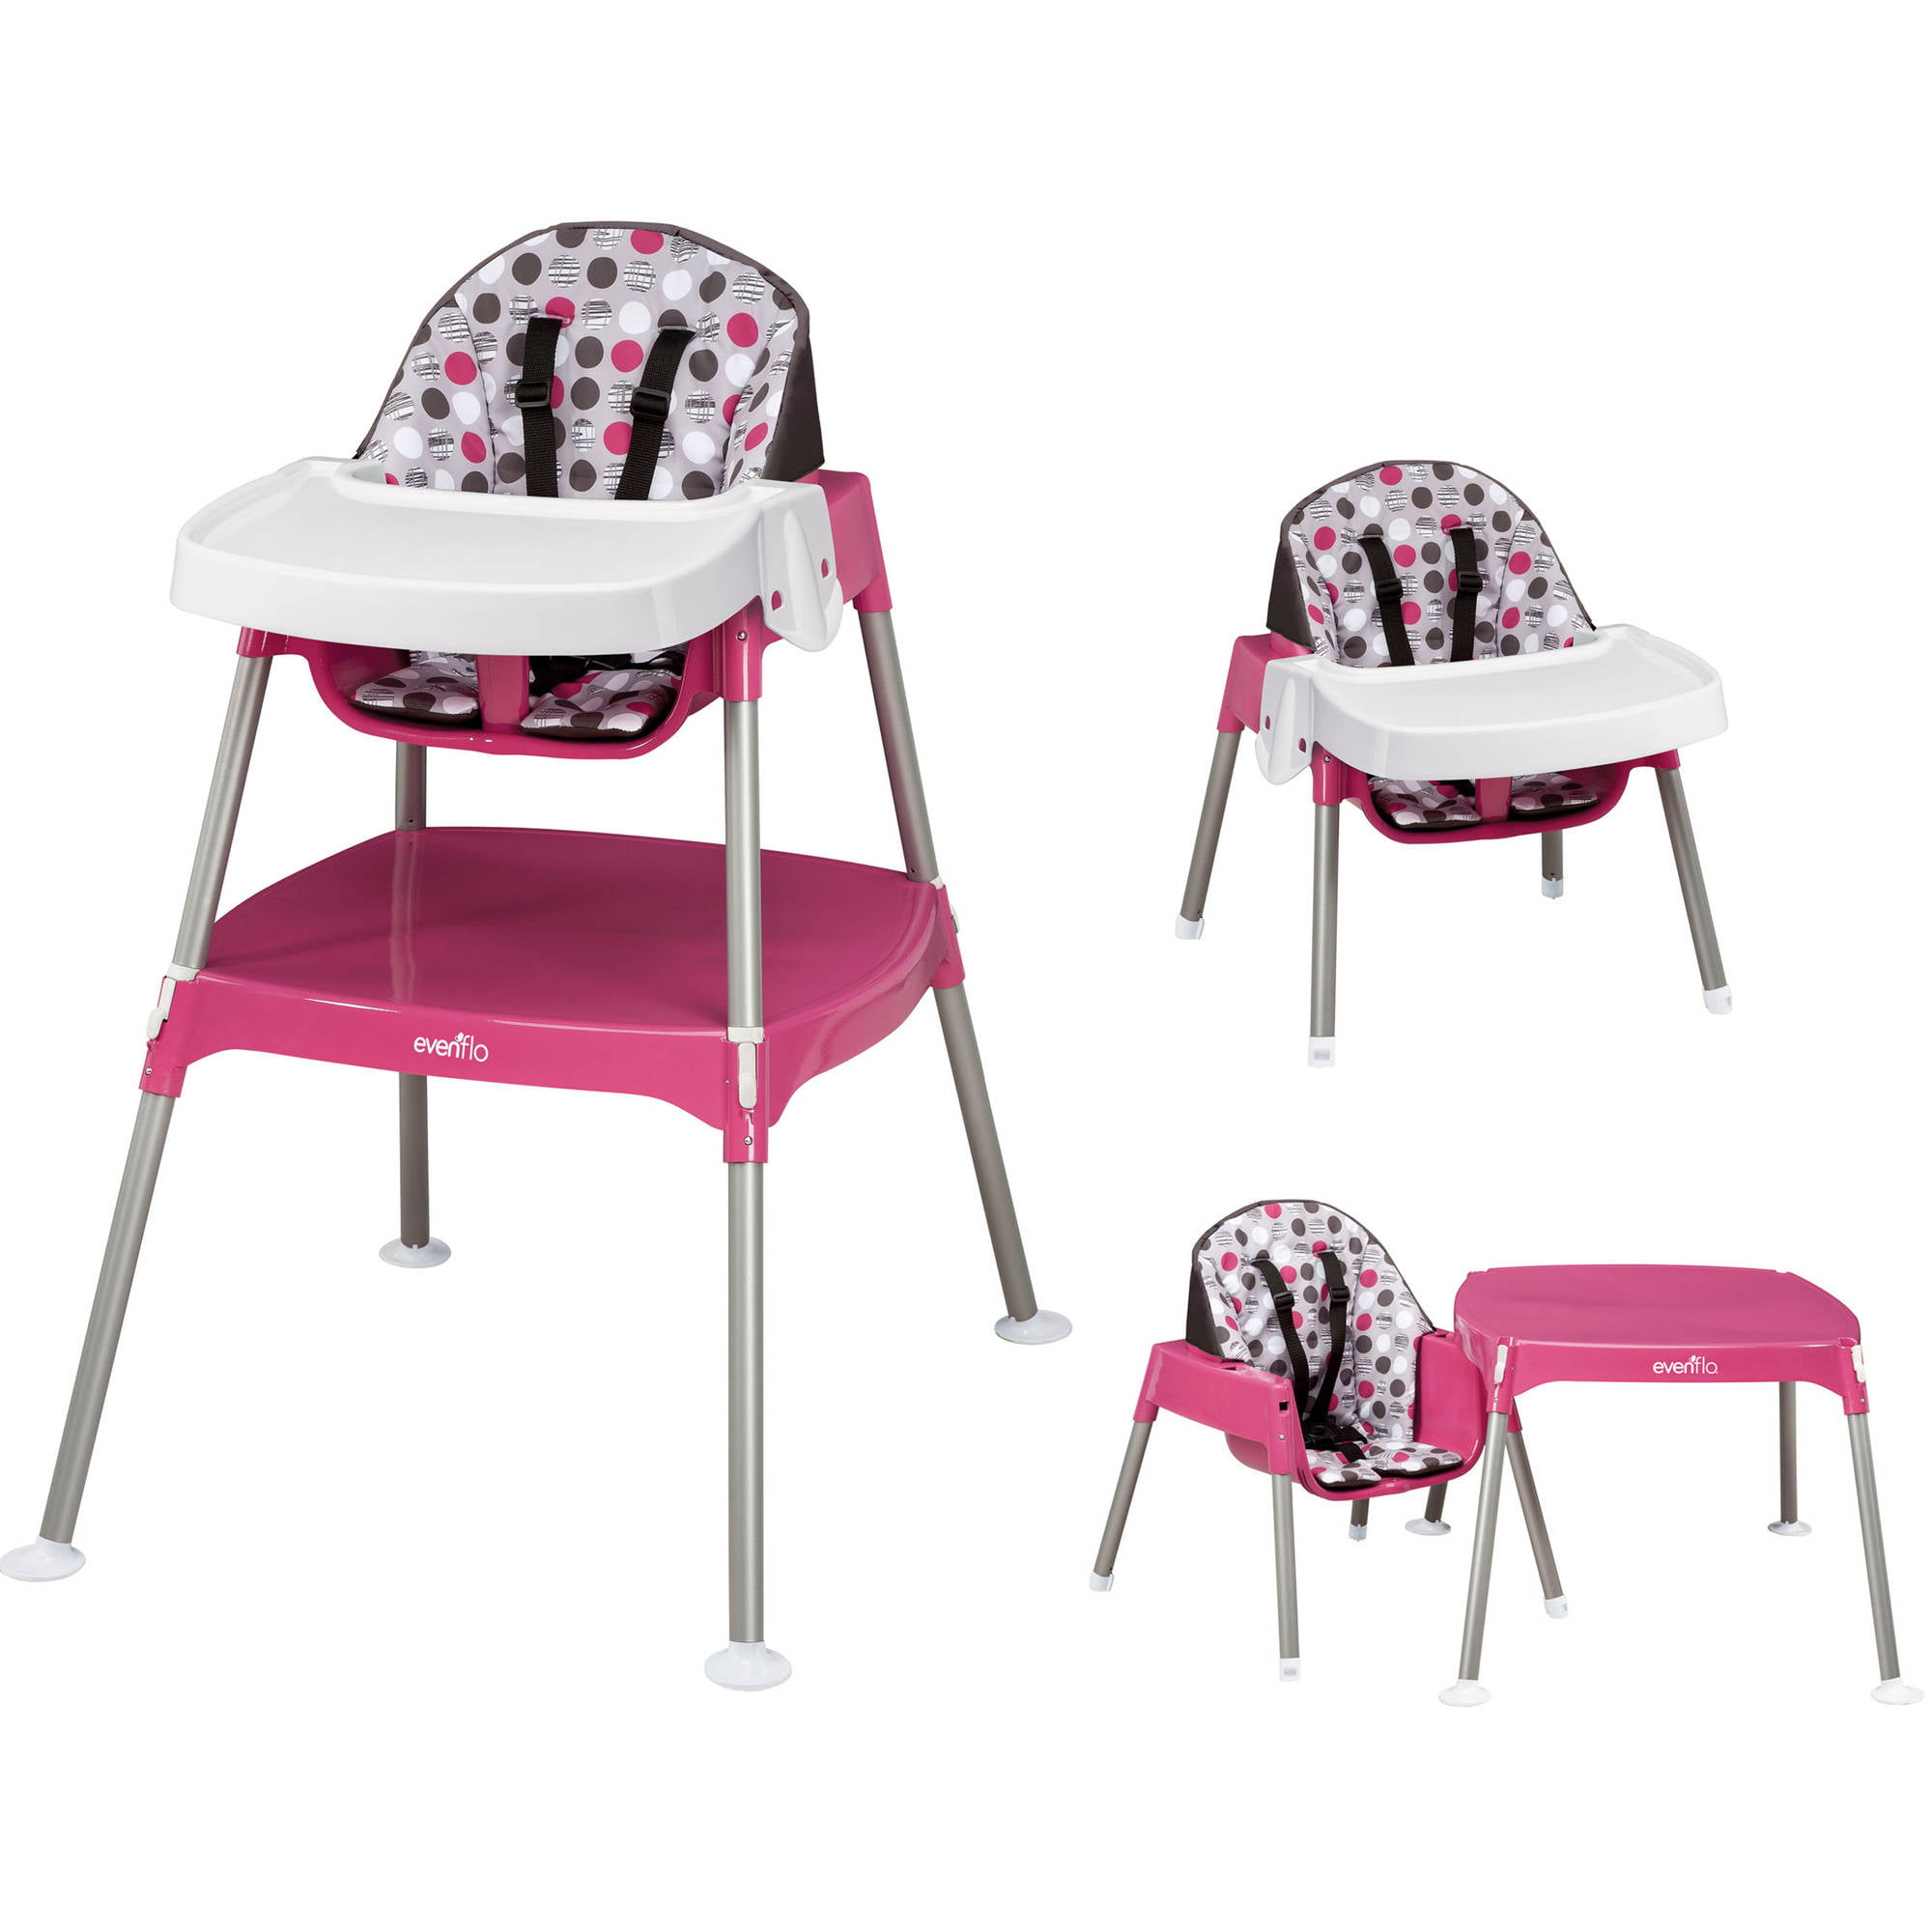 Evenflo 3-in-1 Convertible High Chair, Dottie Rose - Walmart.com